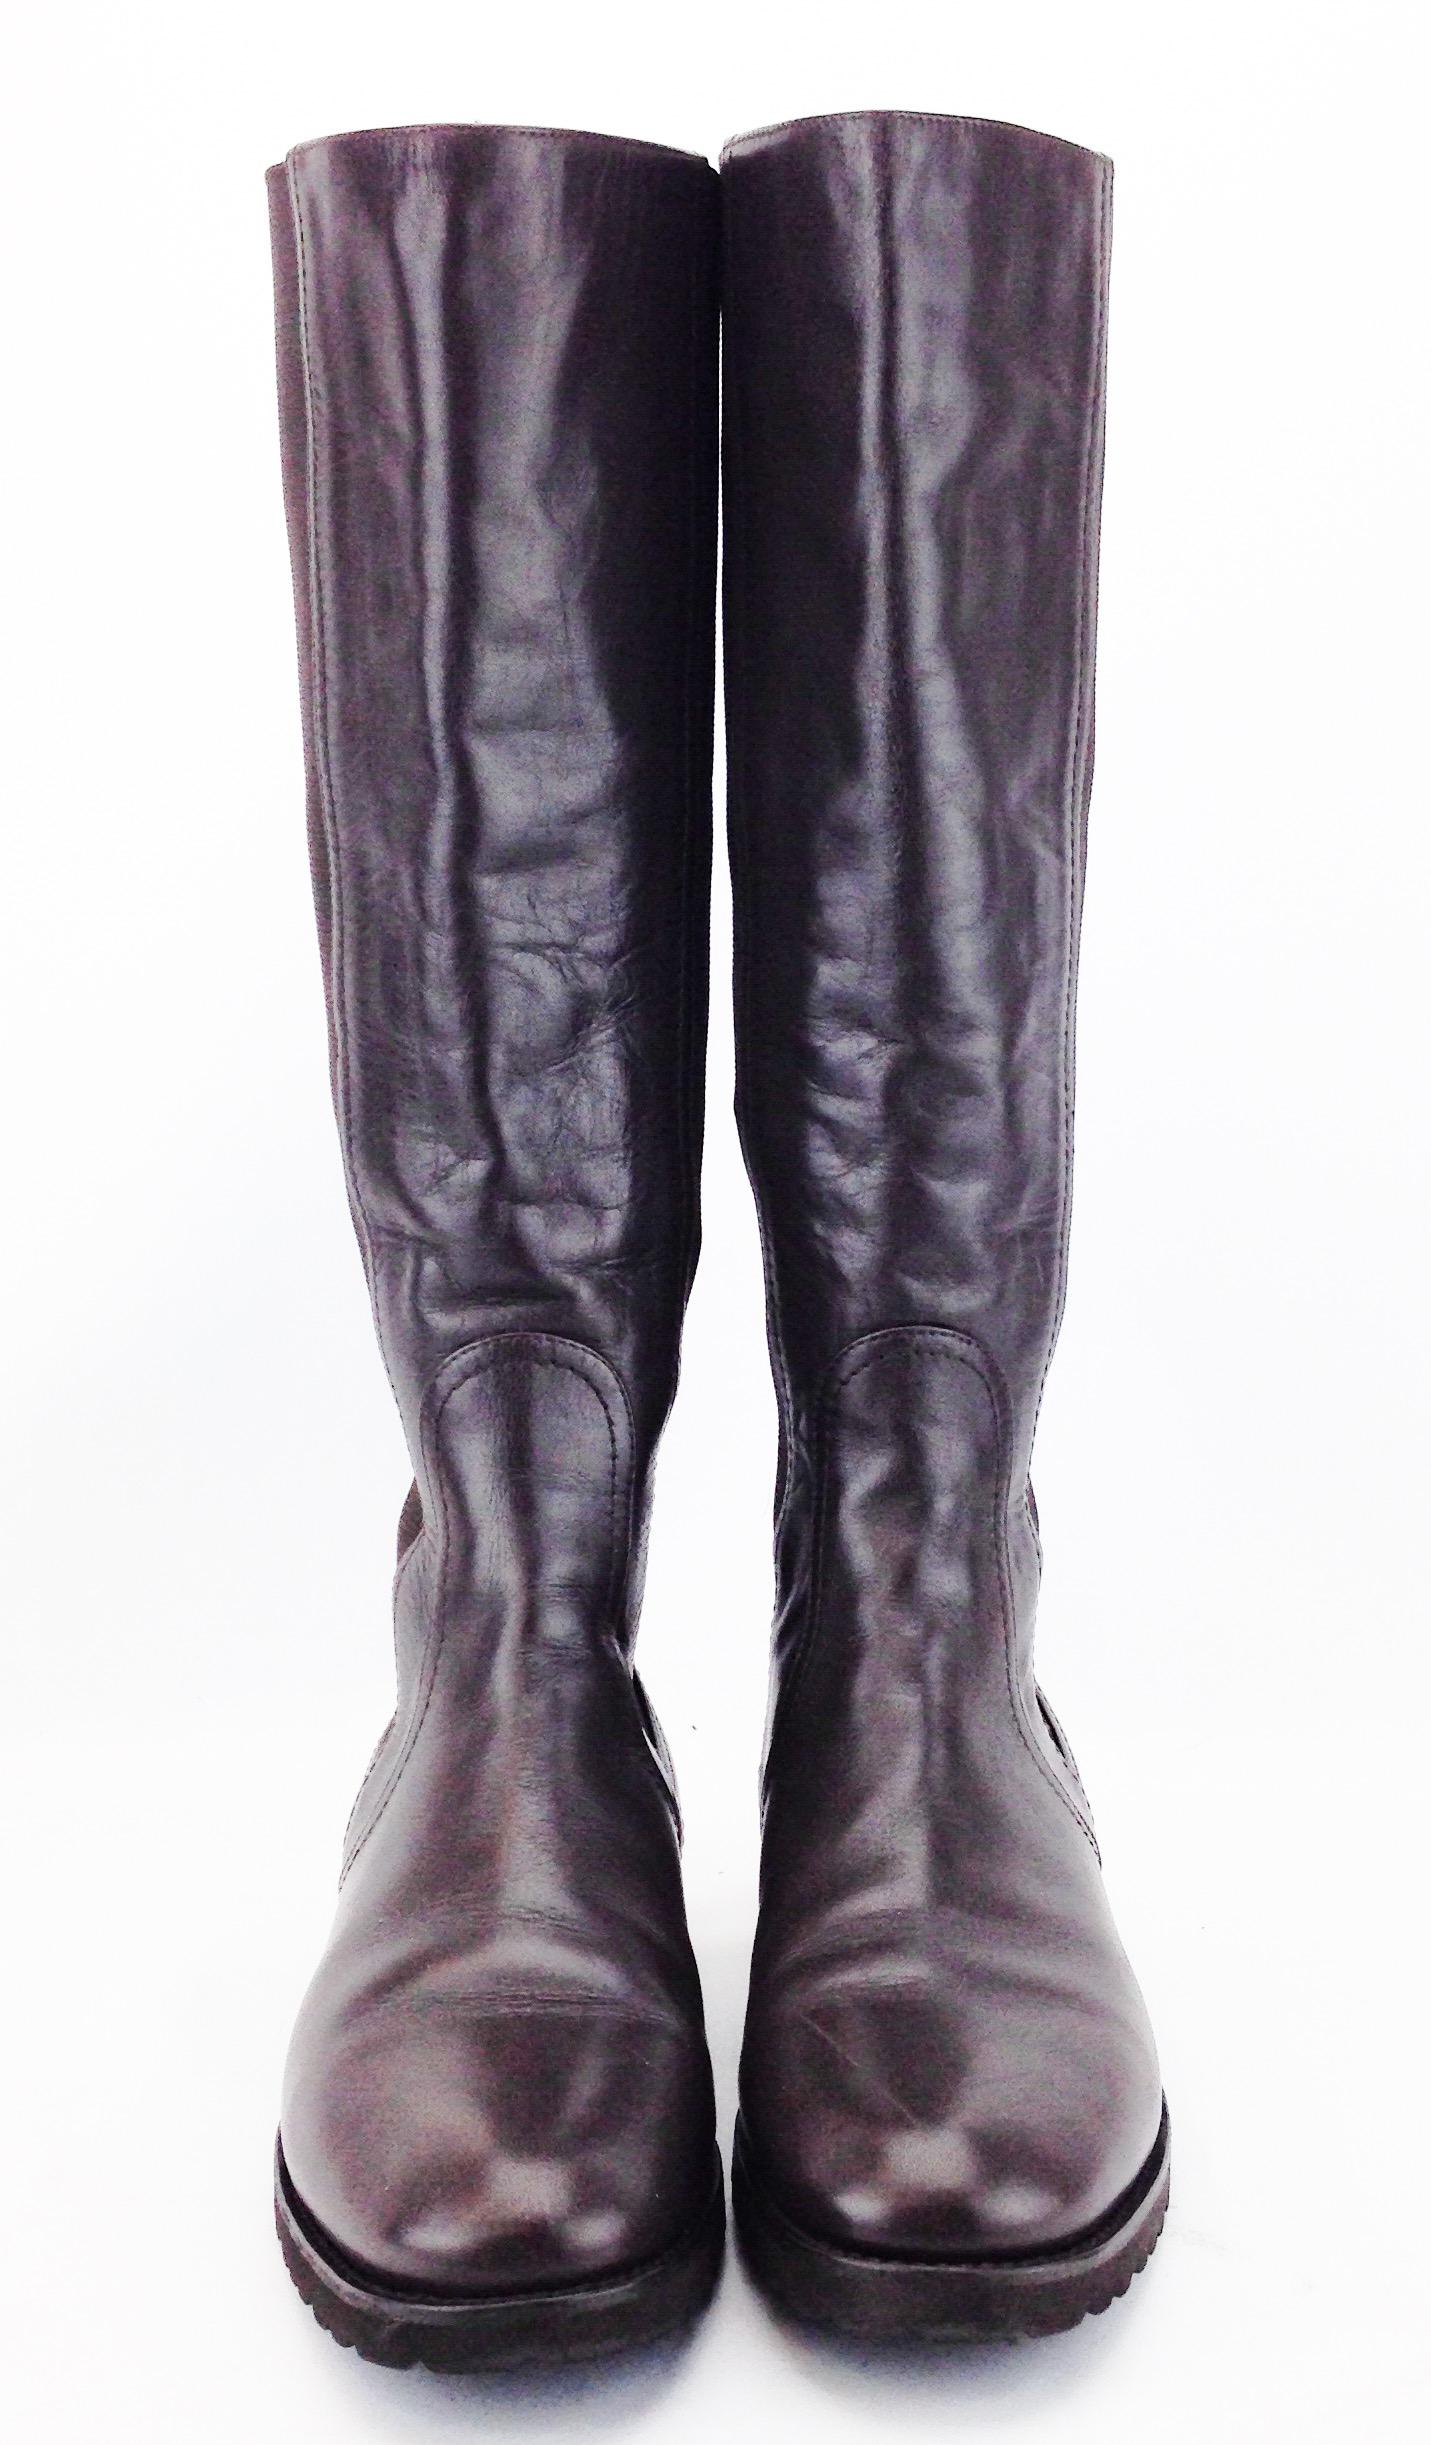 official MaxMara Leather Knee-High Boots free shipping view discount comfortable GHhmiWs